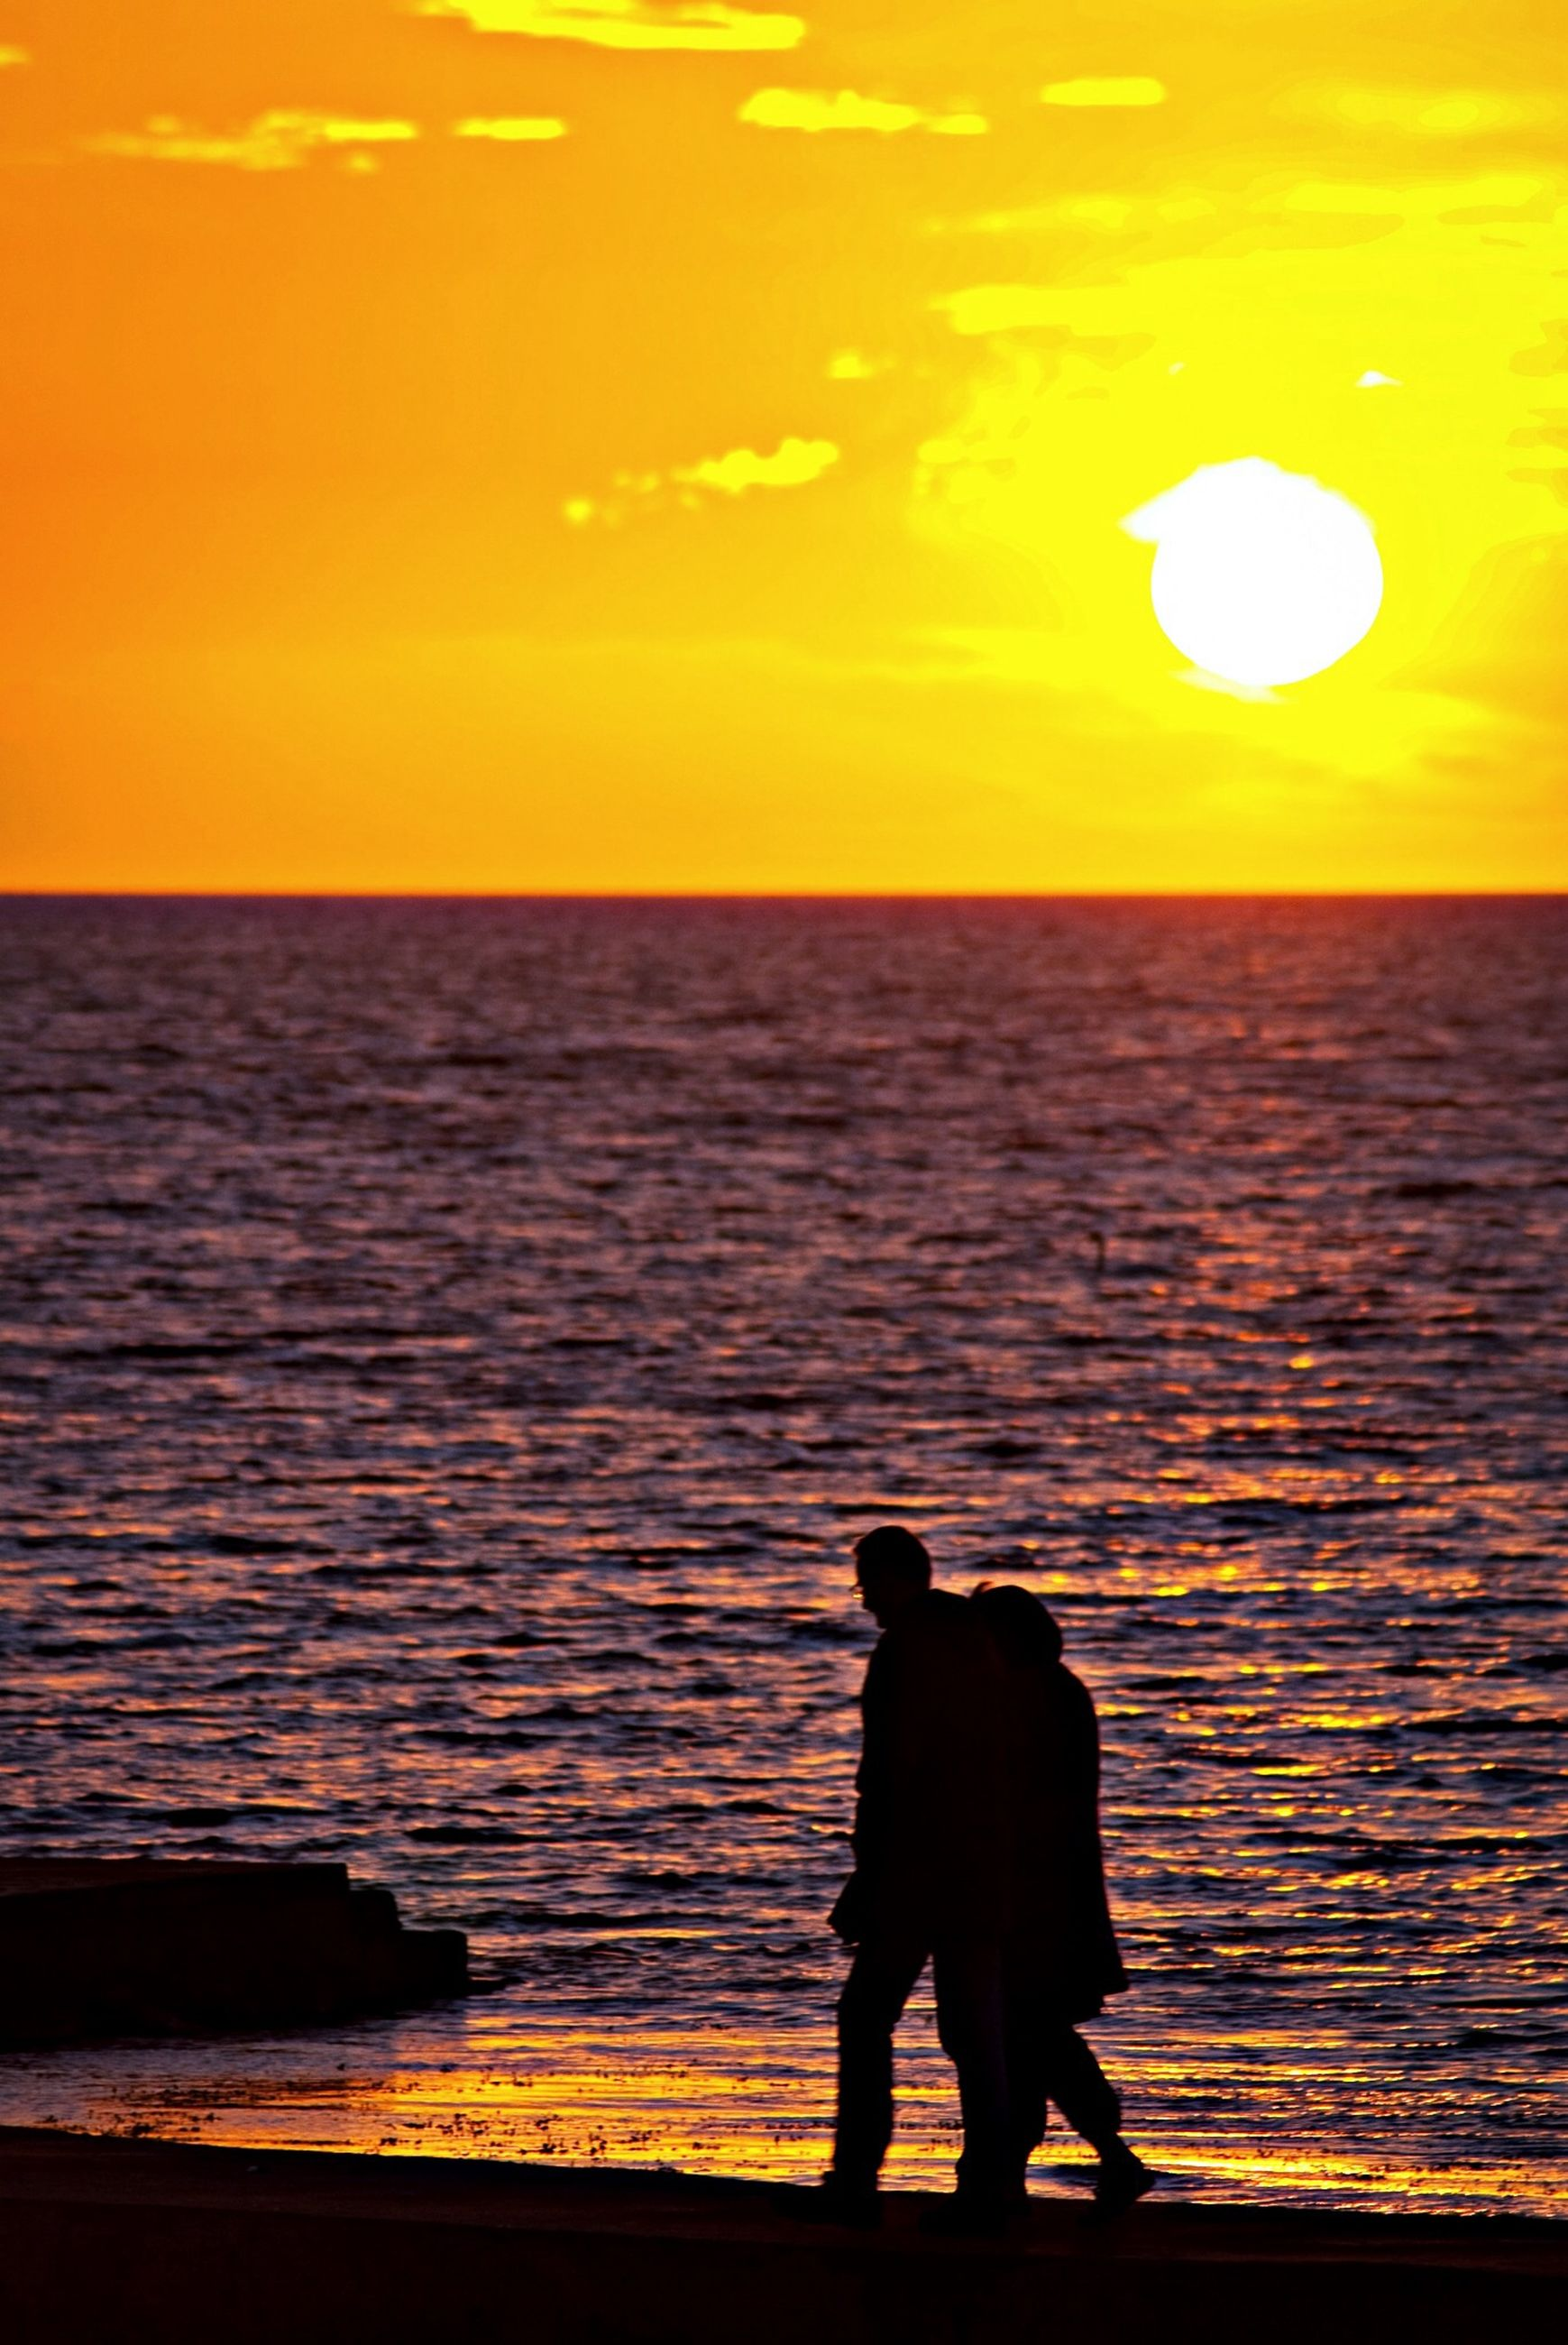 sunset, sea, silhouette, horizon over water, water, orange color, leisure activity, men, scenics, lifestyles, standing, tranquil scene, beauty in nature, sky, tranquility, rear view, sun, nature